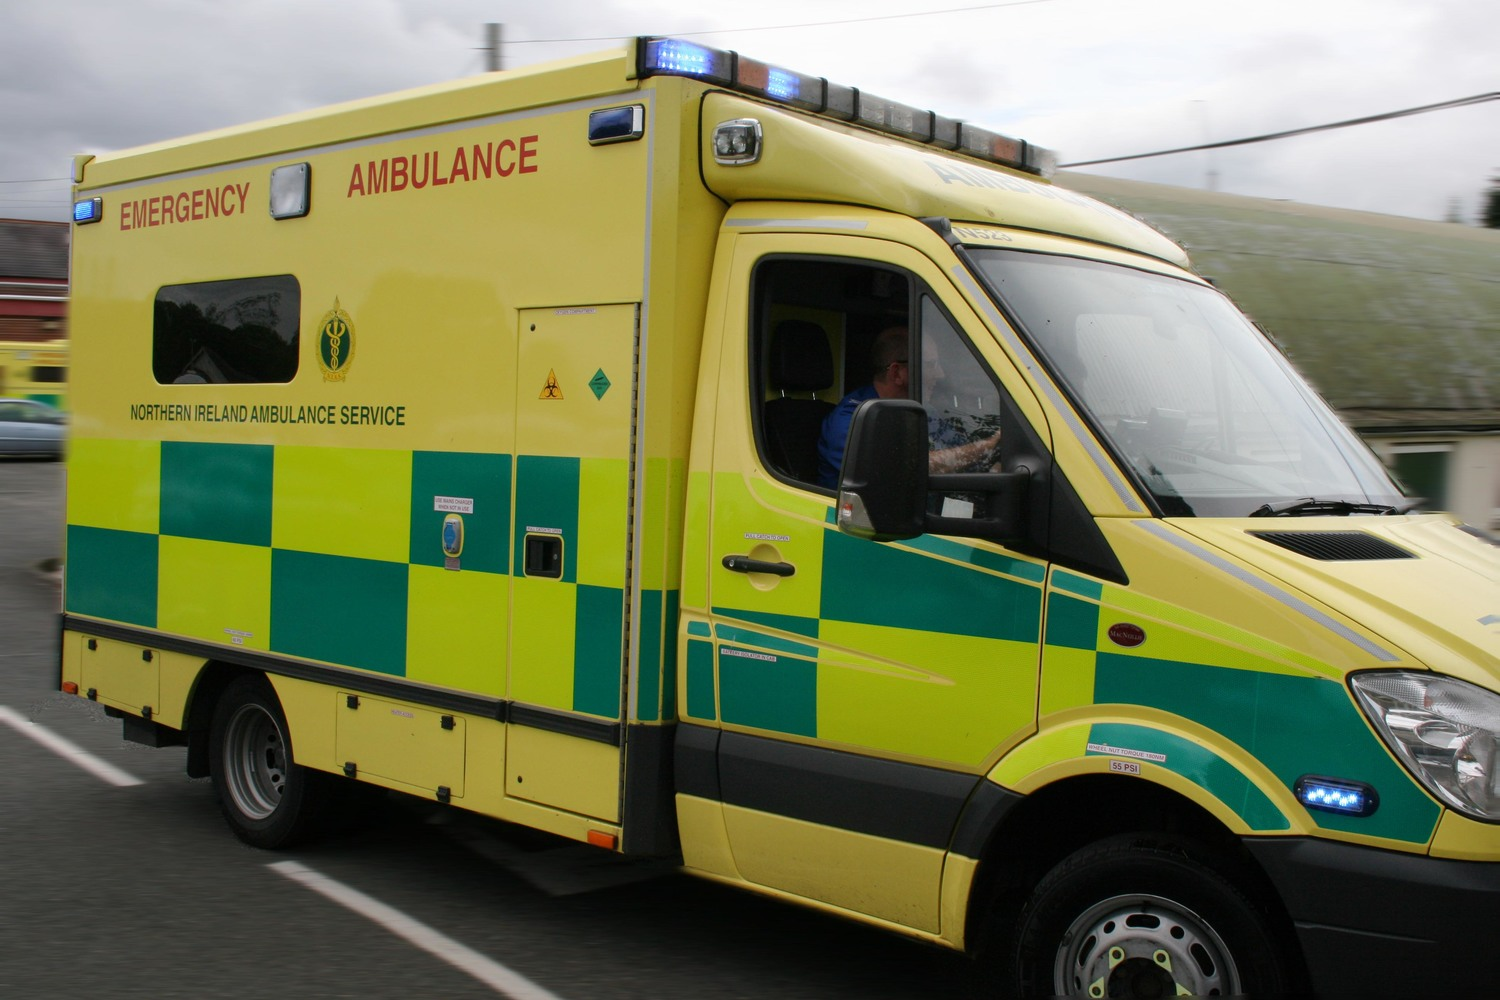 An ambulance waiting to clear a hospital is not available for other 999 calls